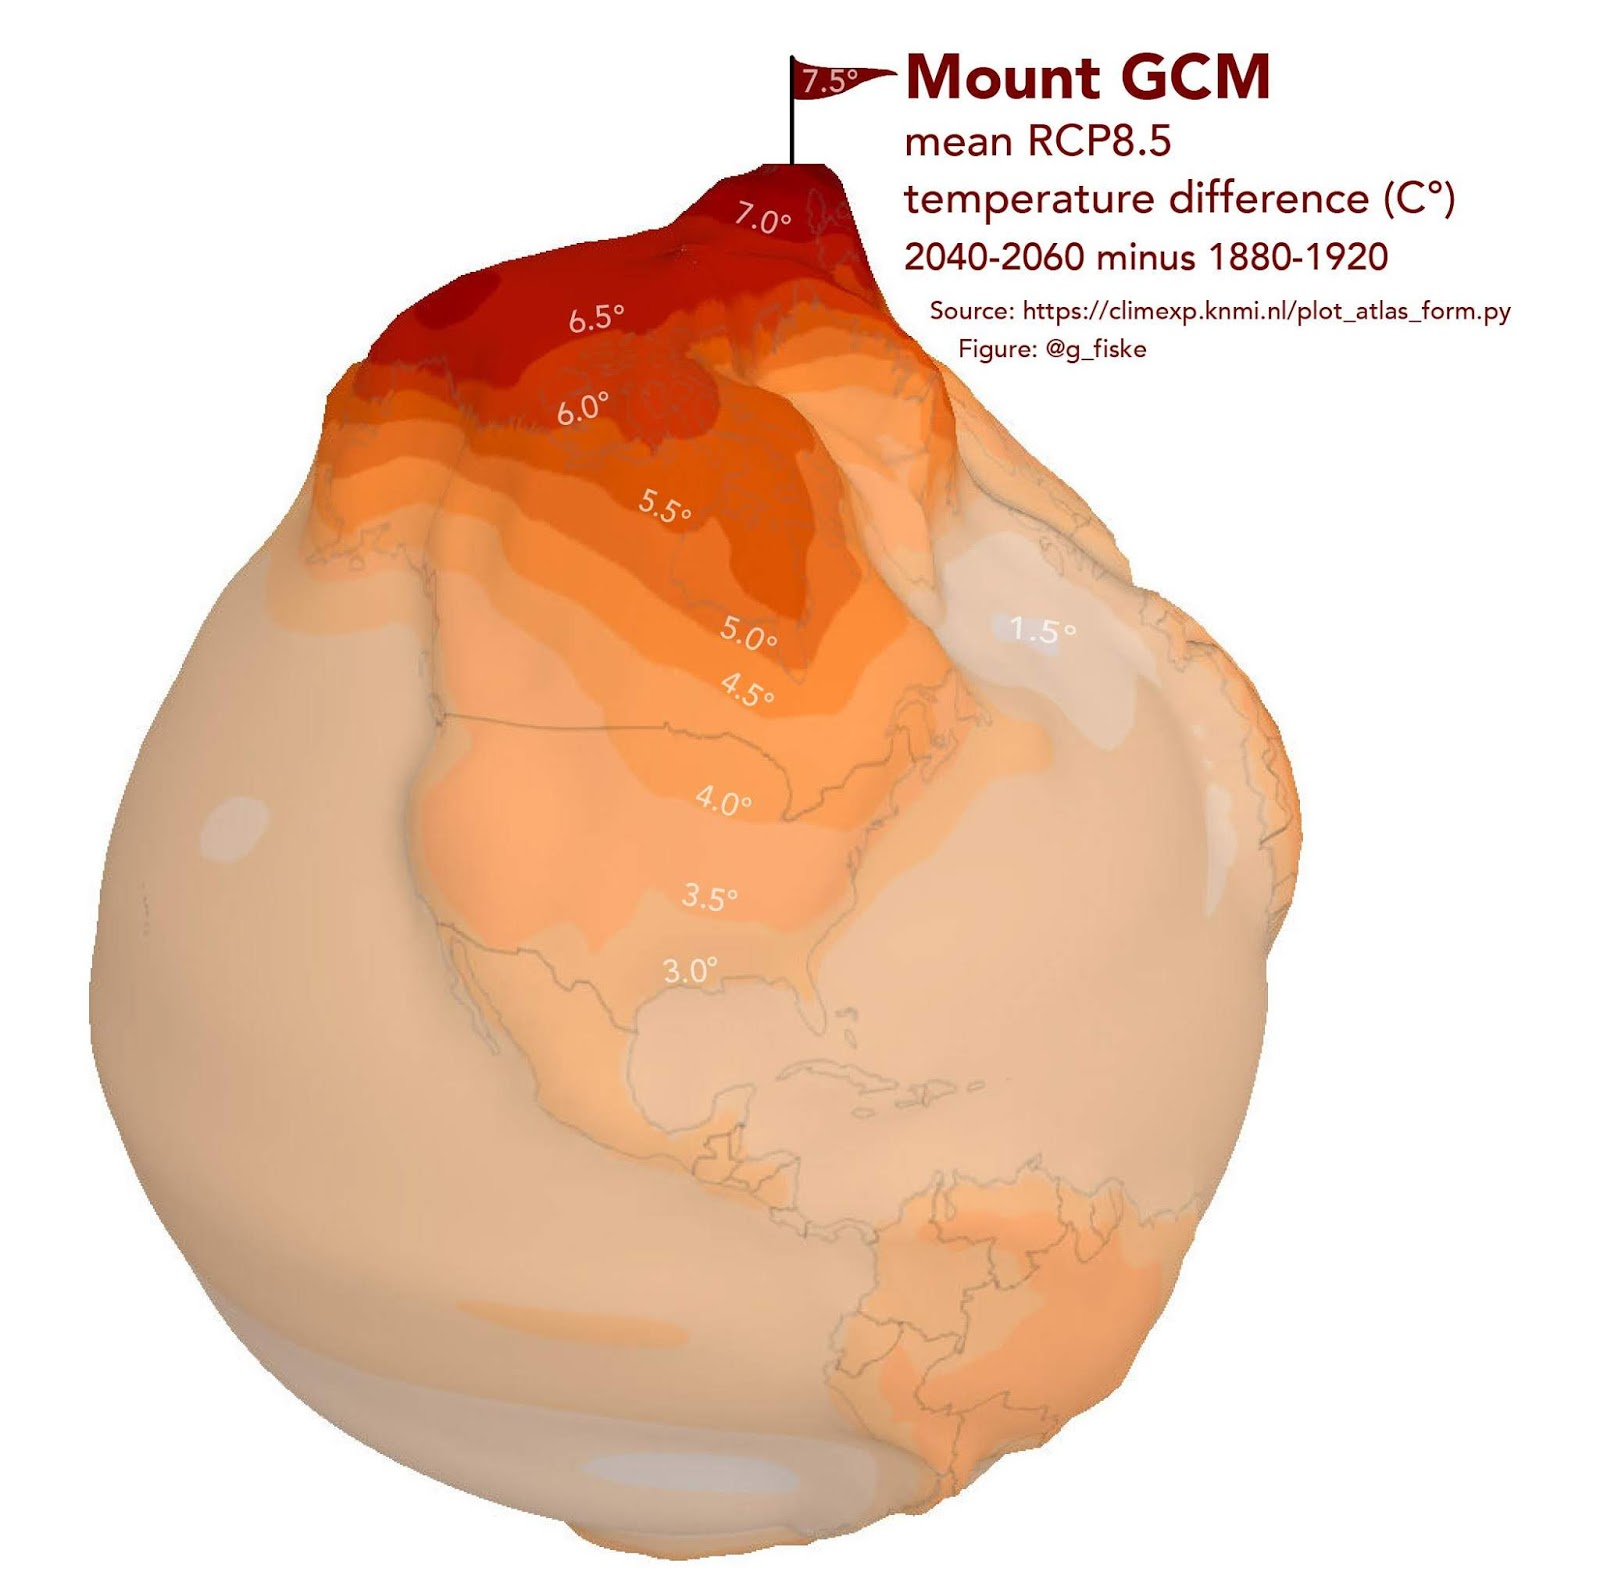 The Warming in the Arctic As a Mountain